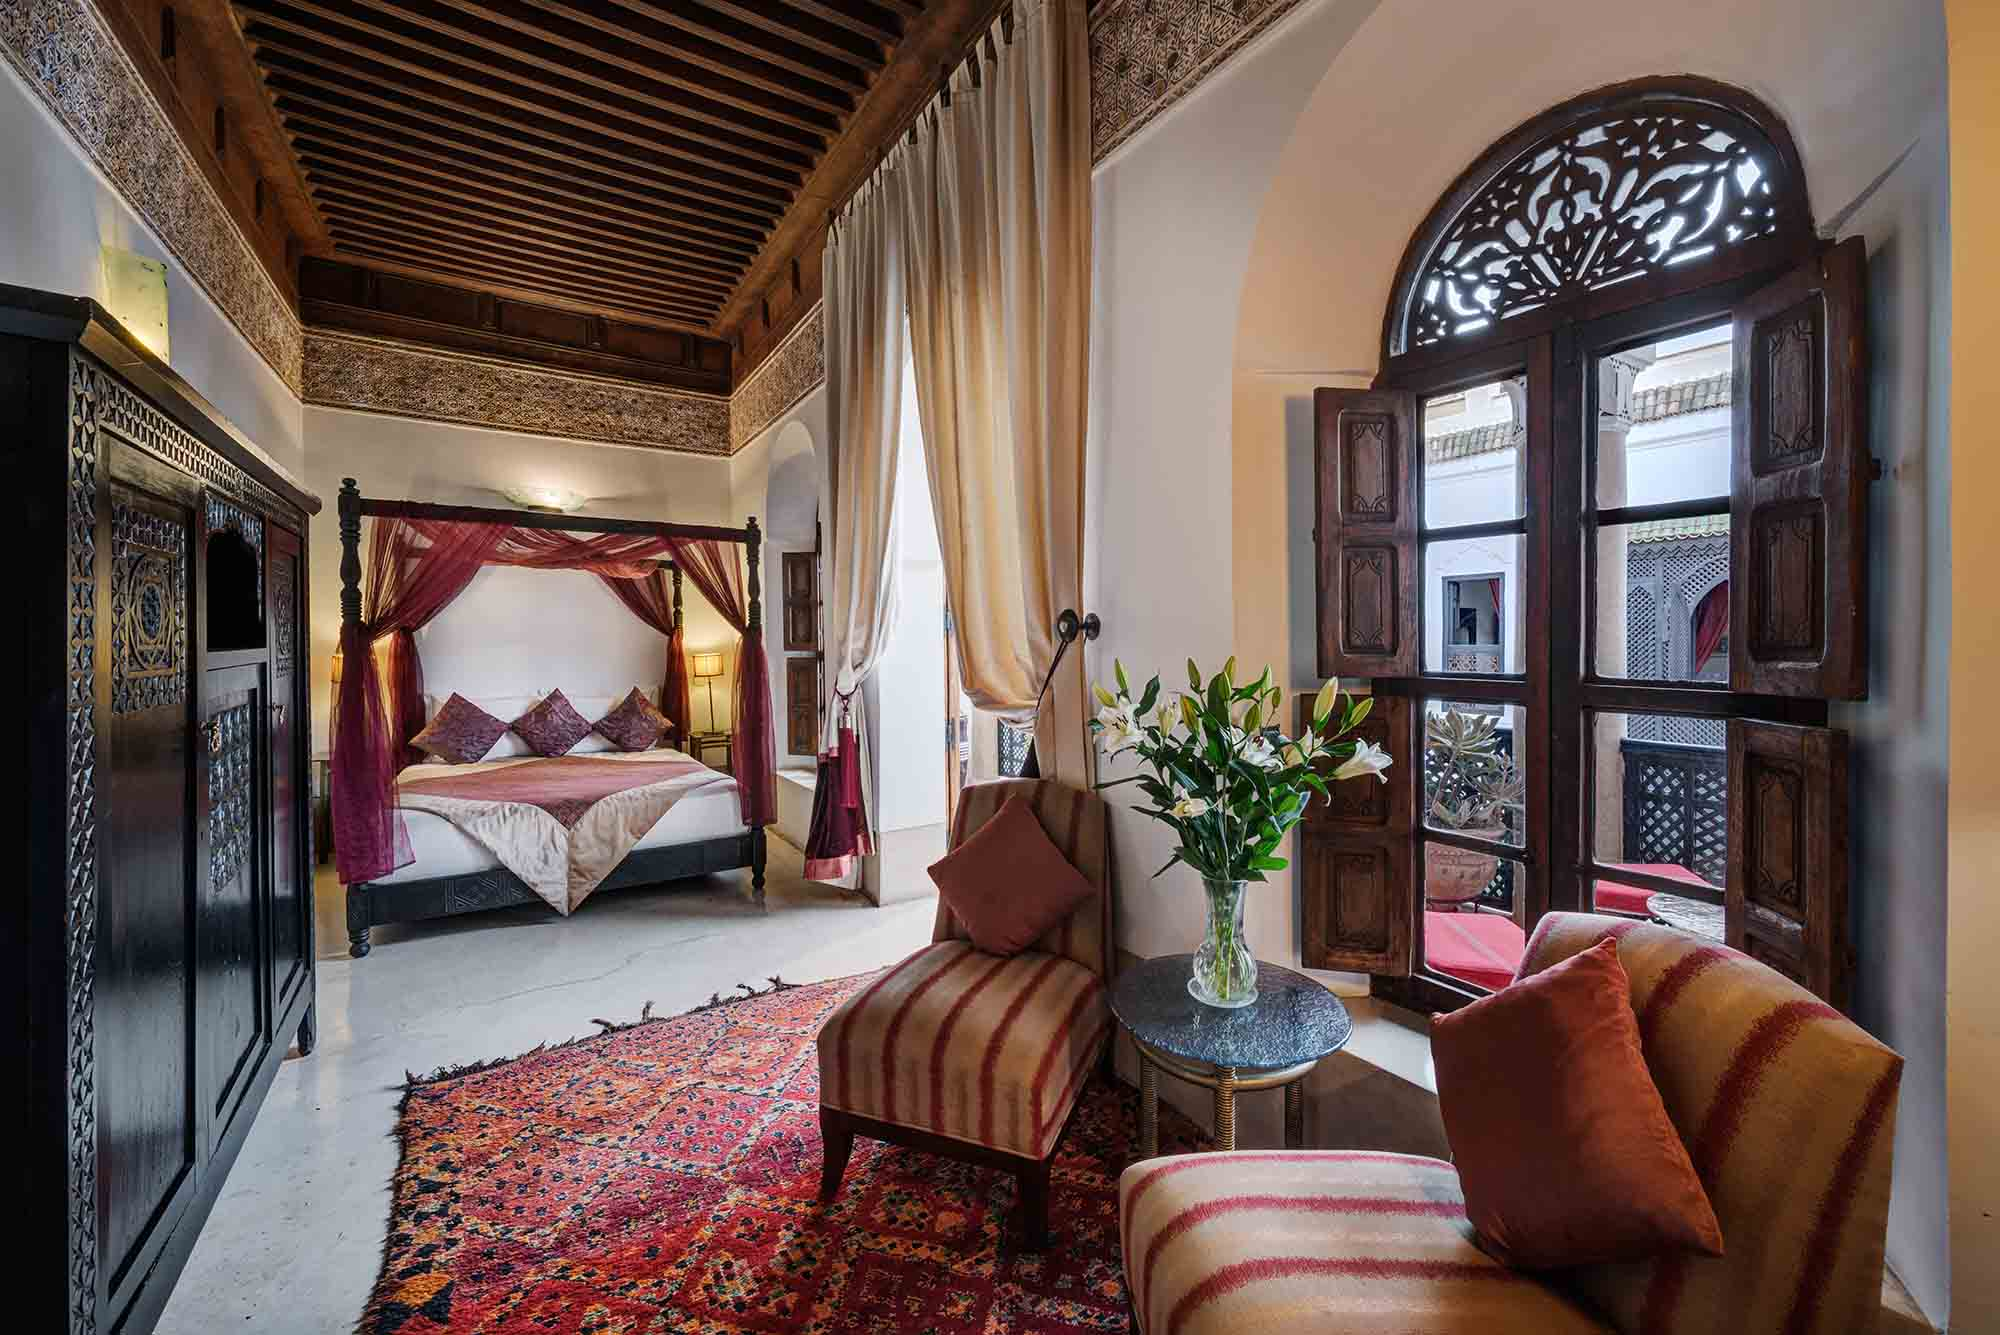 RIAD AZZAR GUEST HOUSE MARRAKECH BEDROOM